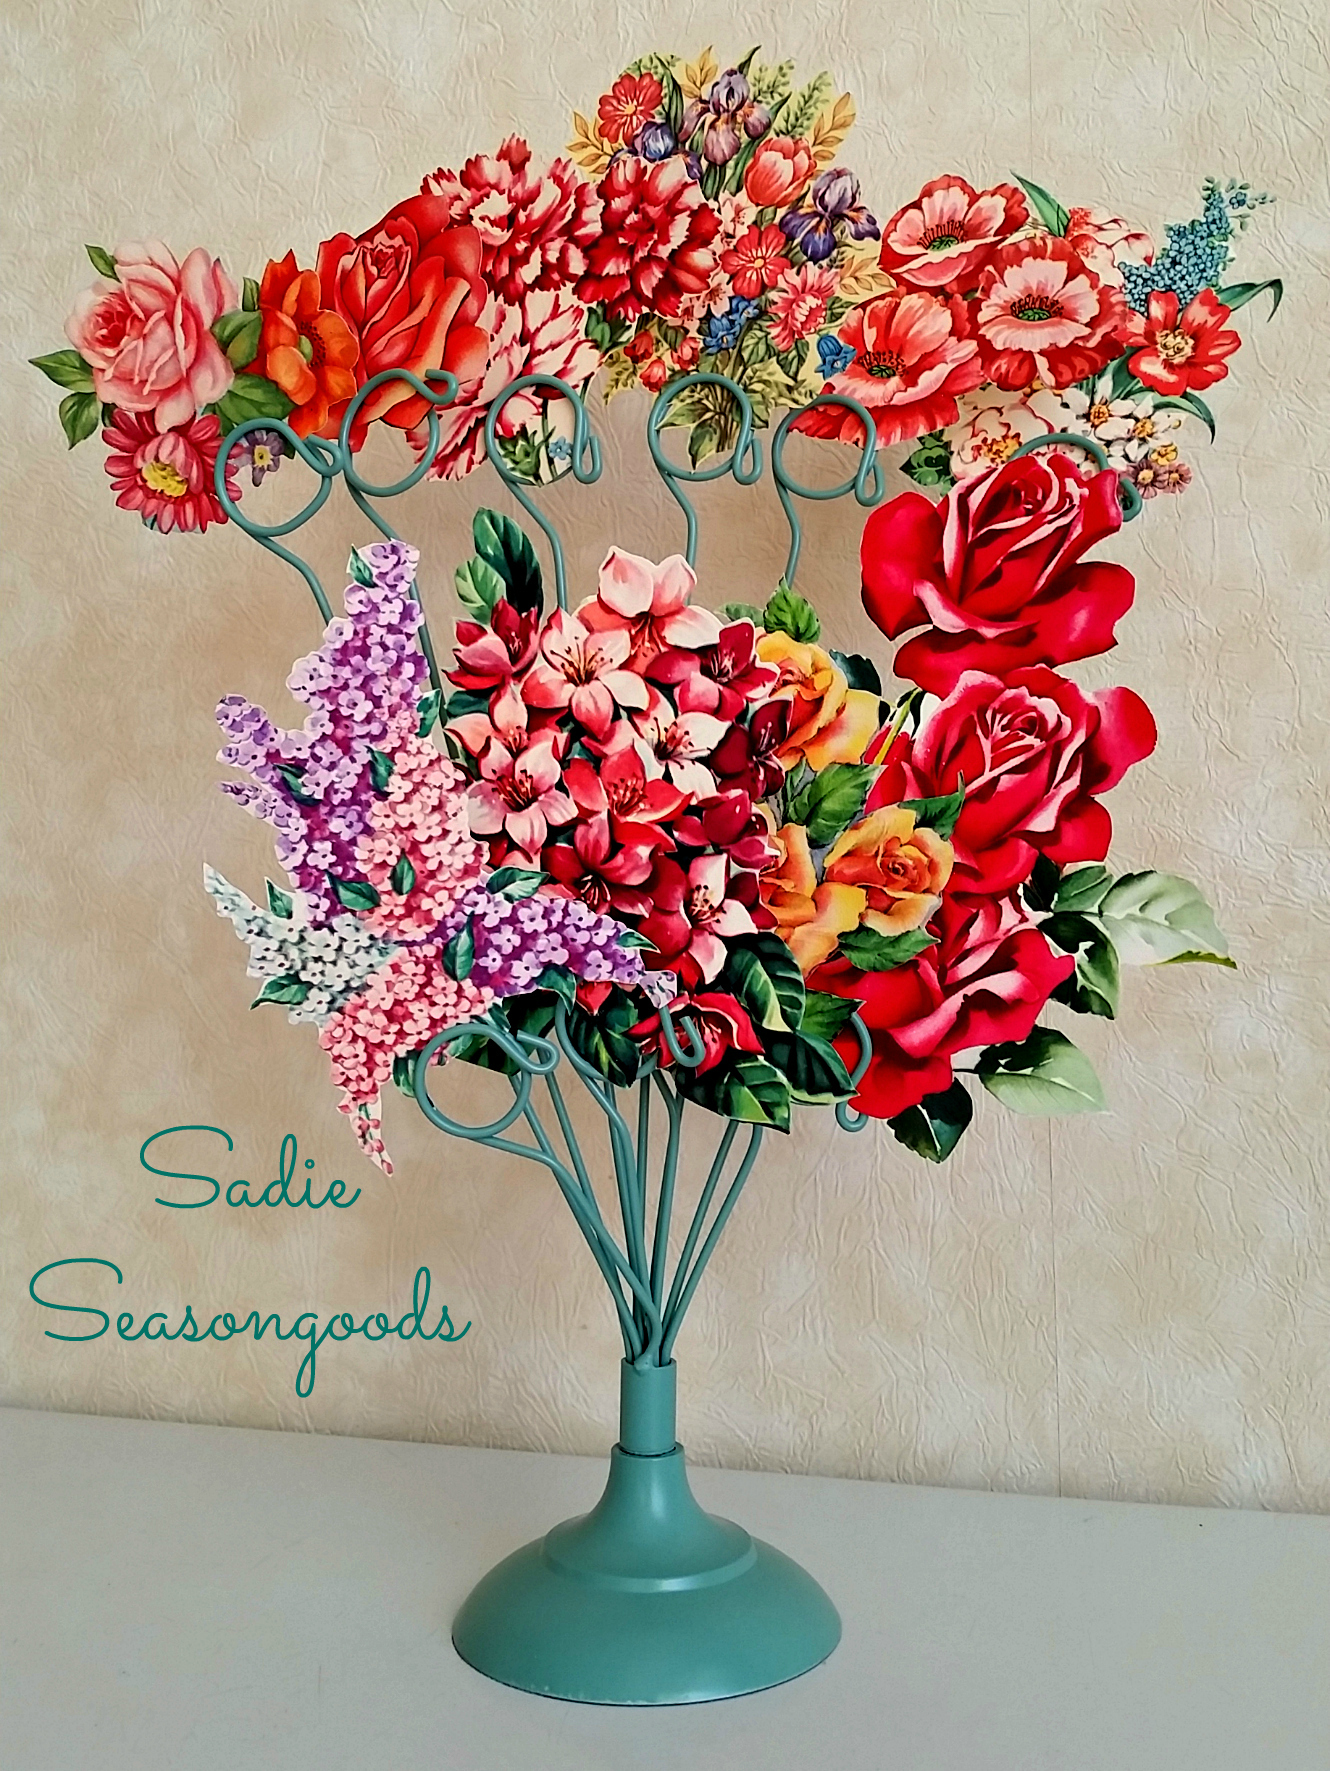 Vintage Greeting Card Flower Faux-quet, by Sadie Seasongoods, featured on Funky Junk Interiors